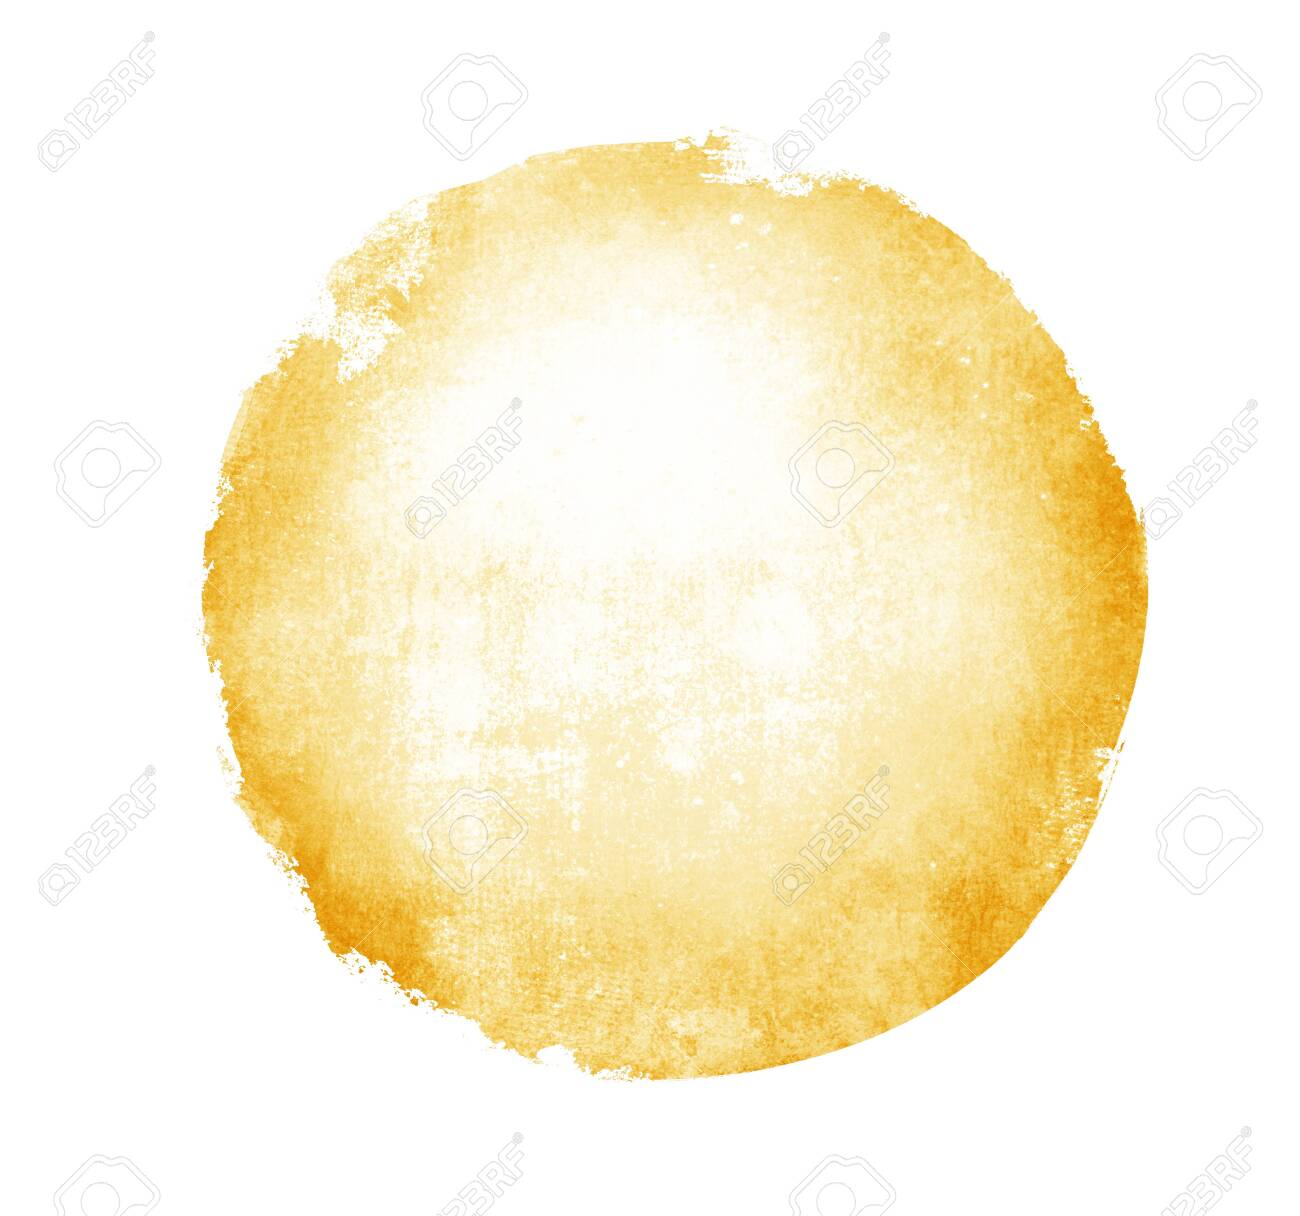 Watercolor circle on white as background - 135649526